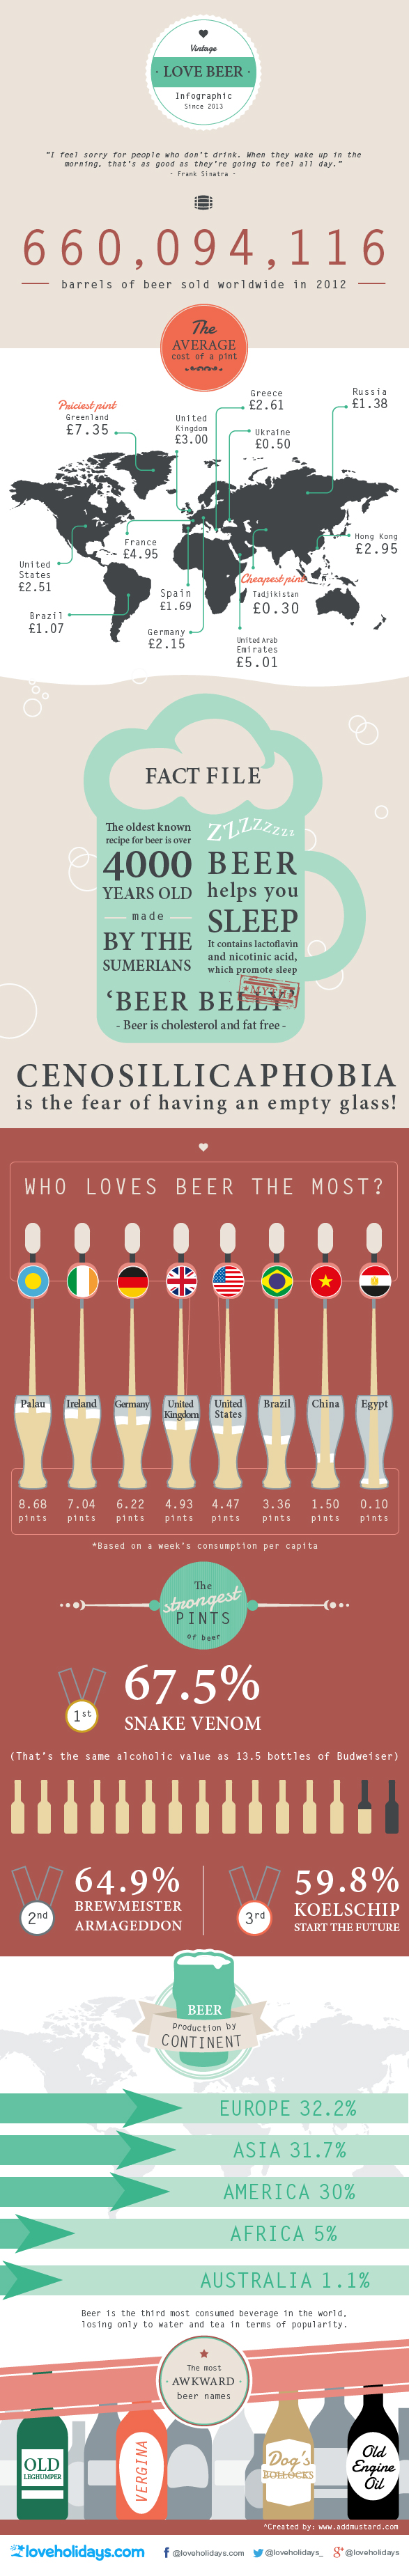 Who Loves Beer the Most?